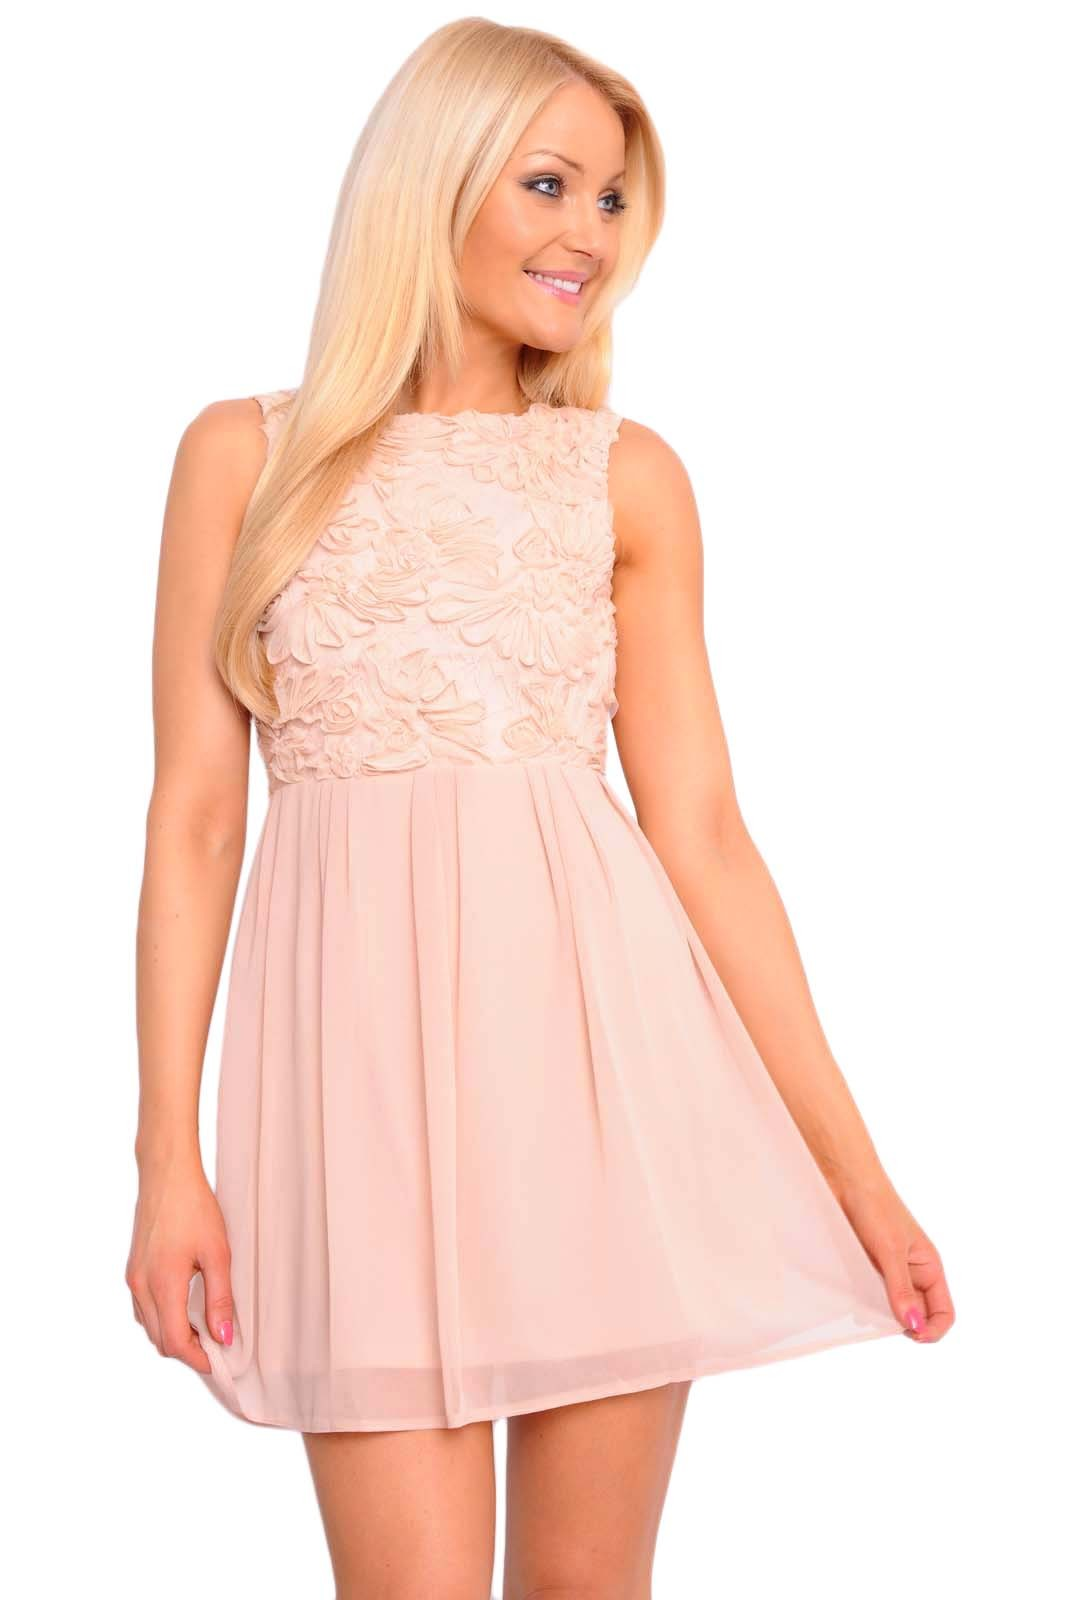 White floral lace skater dress